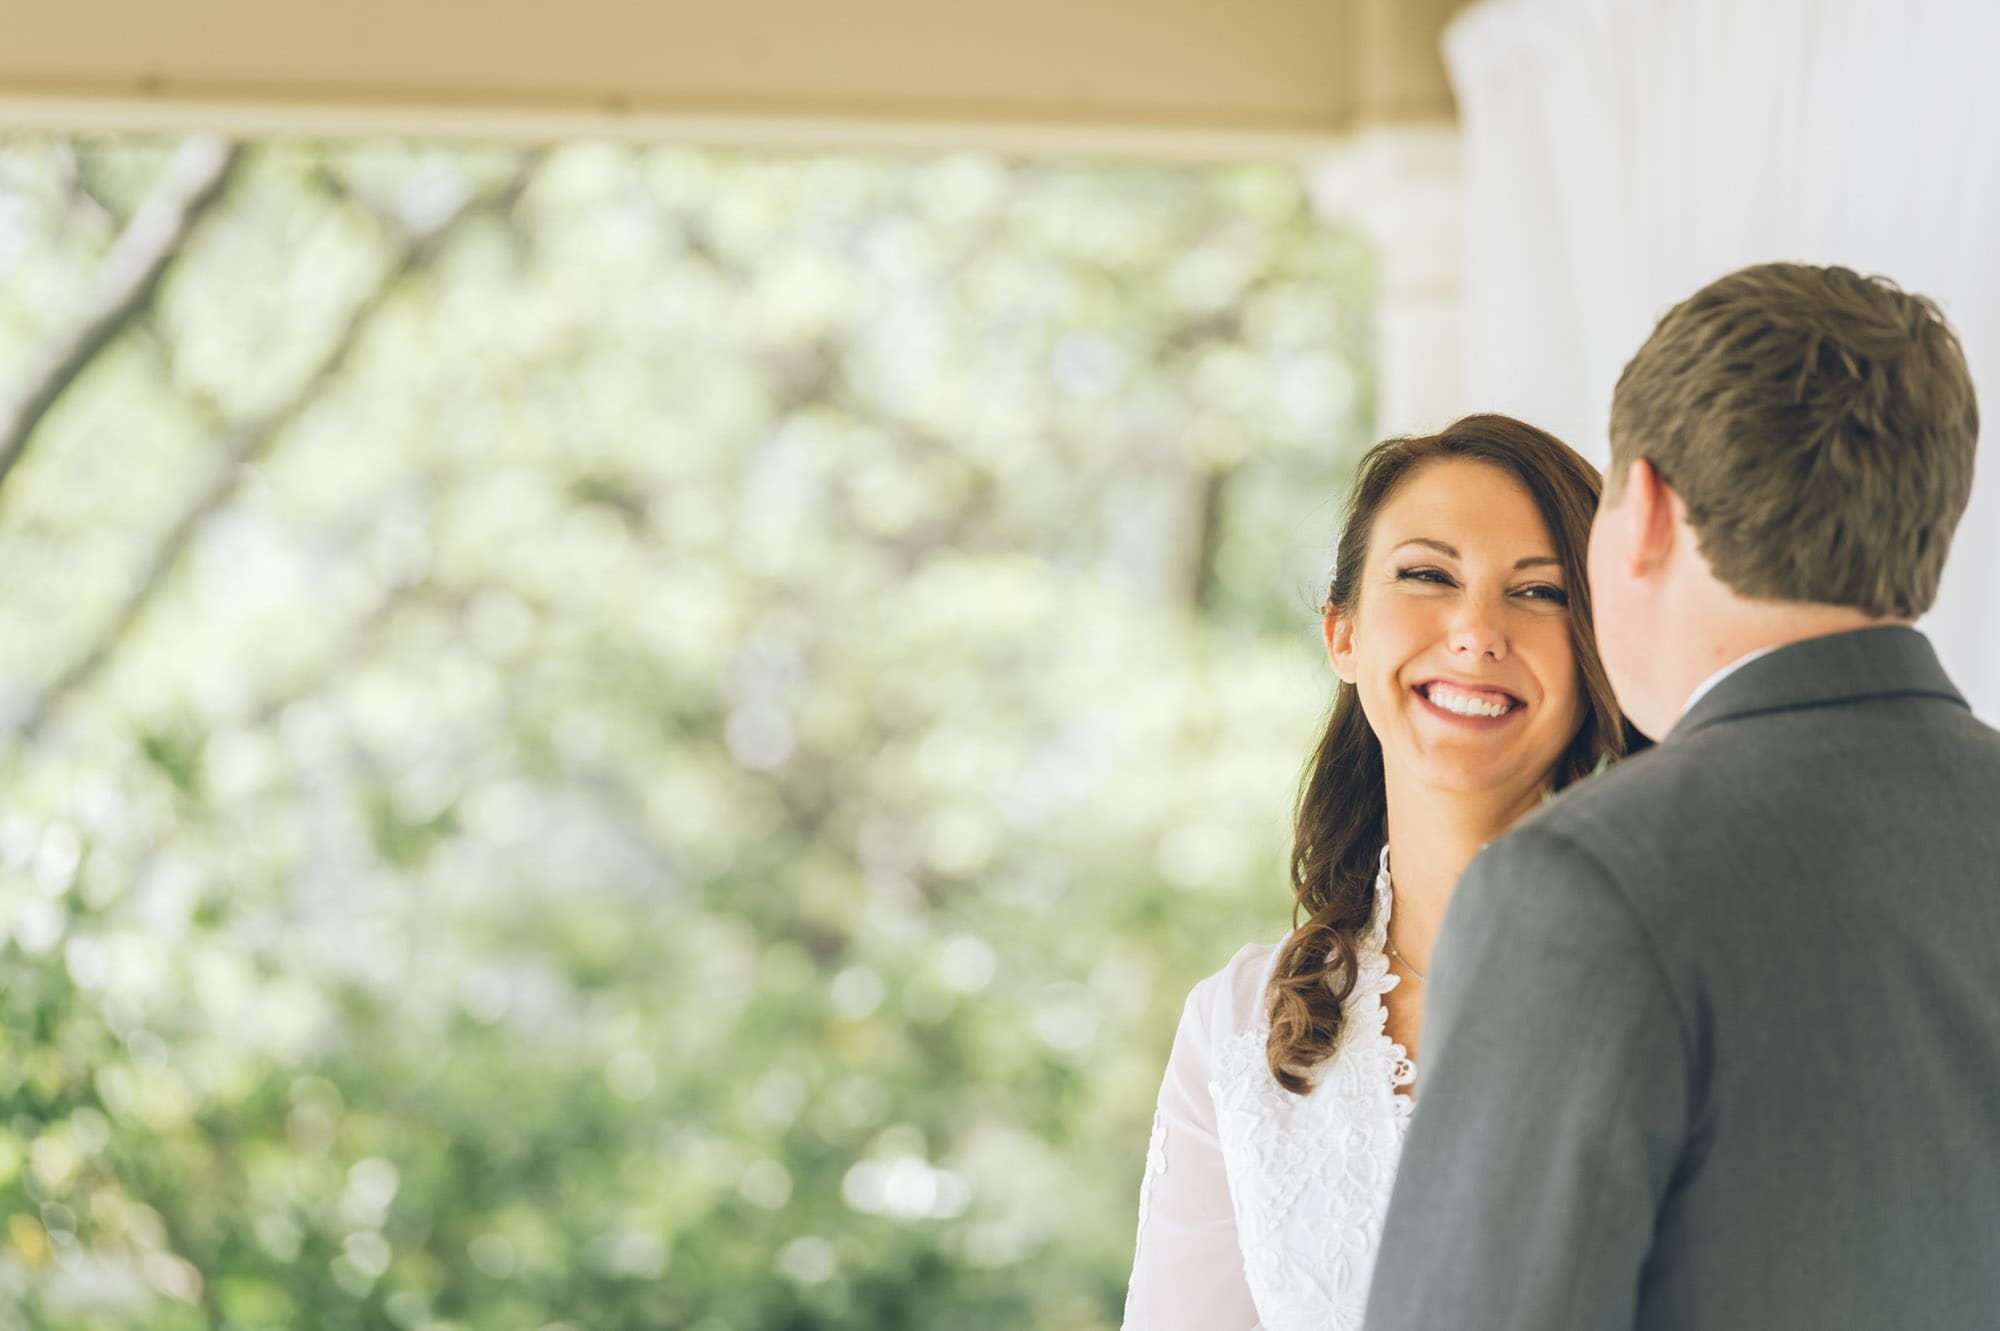 newlywed woman smiling staring at her her groom, photographed by Eivan's in Dallas